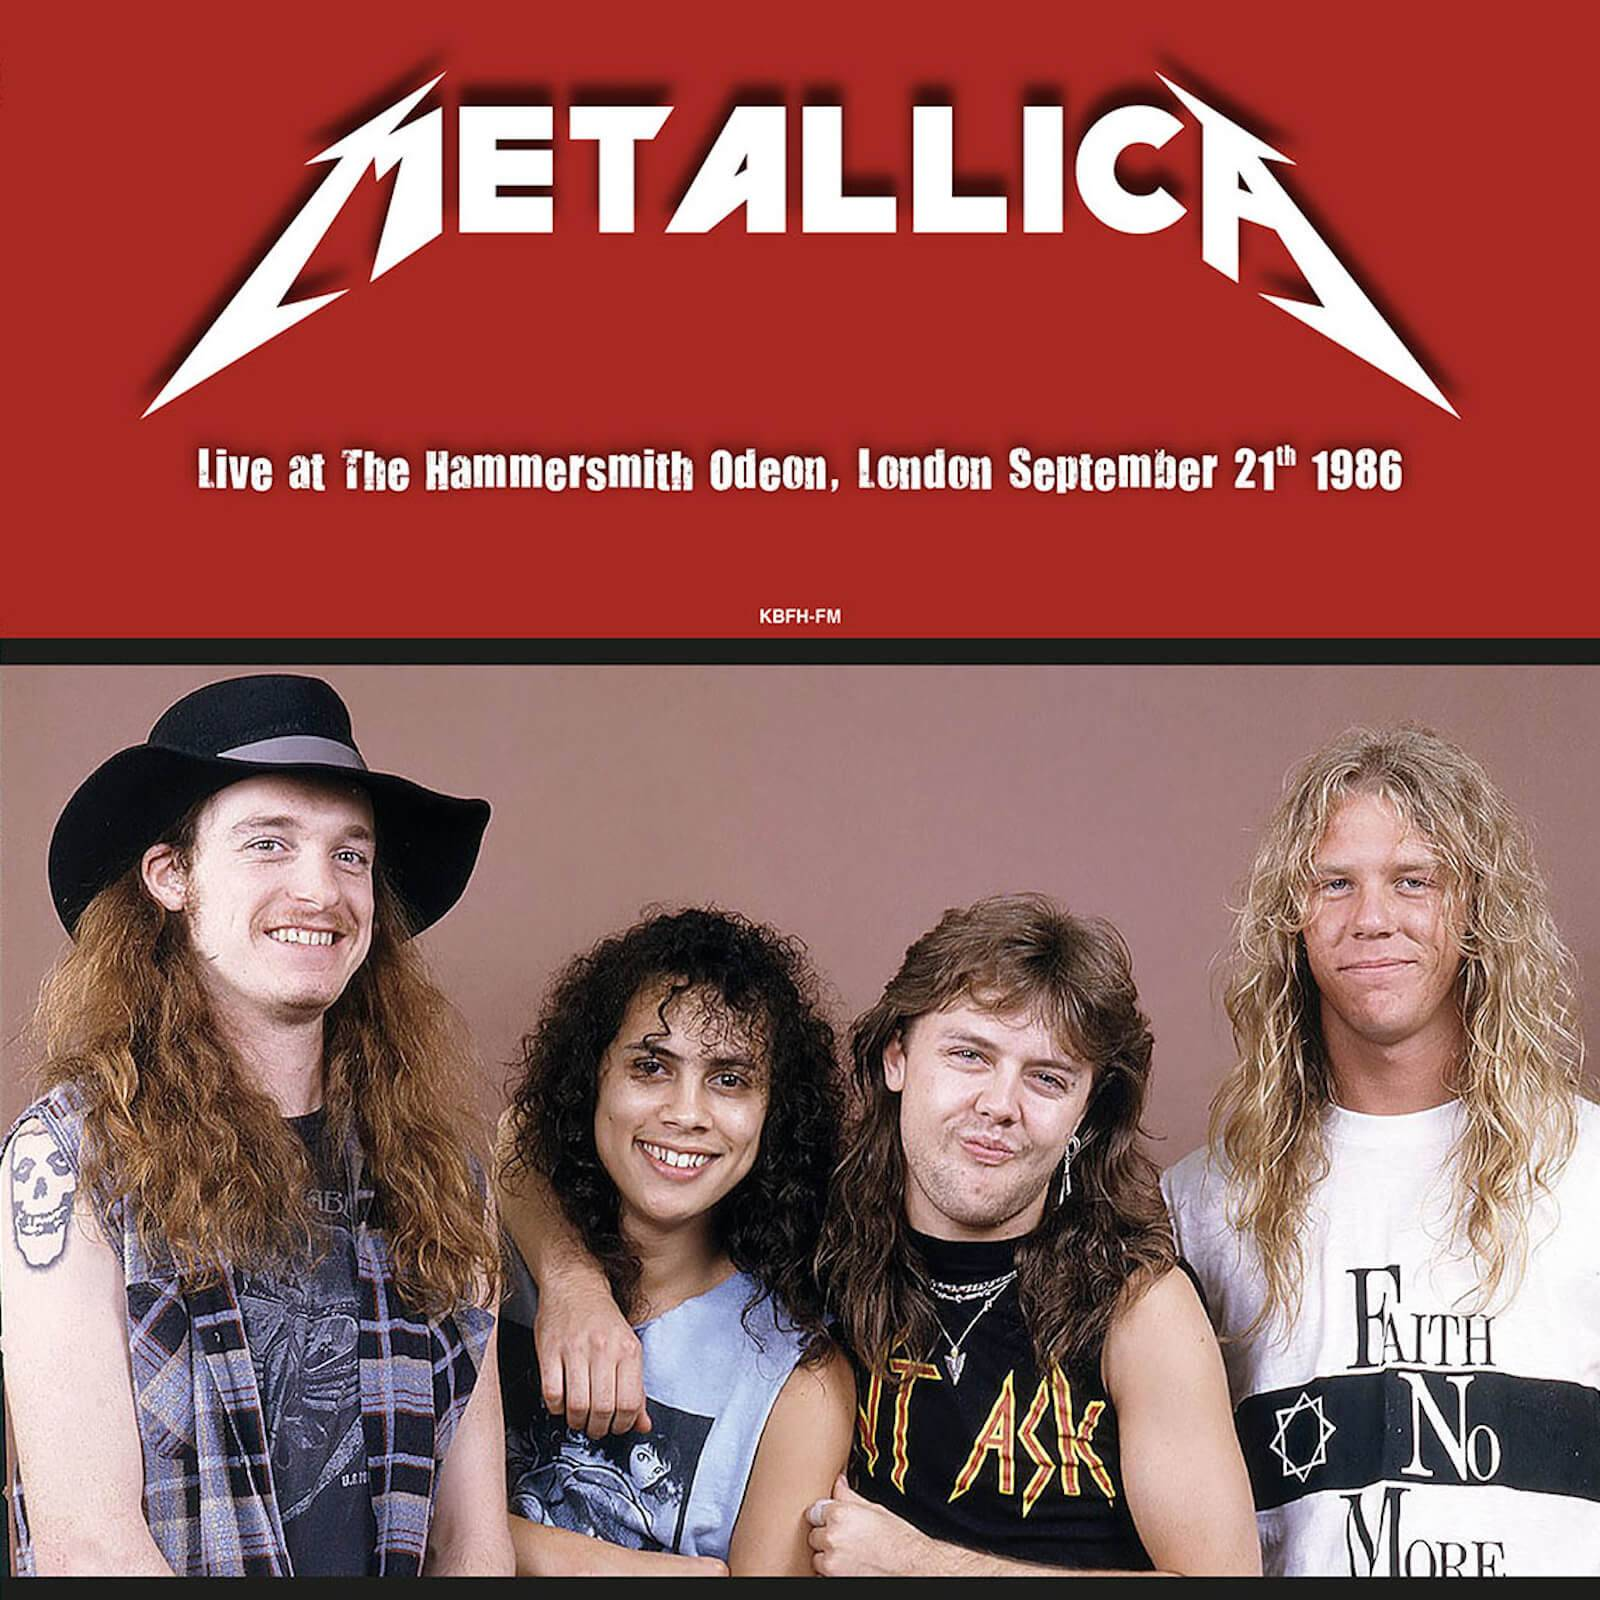 DOL Metallica - Live At The Hammersmith Odeon London September 21st 1986 (Red Vinyl)